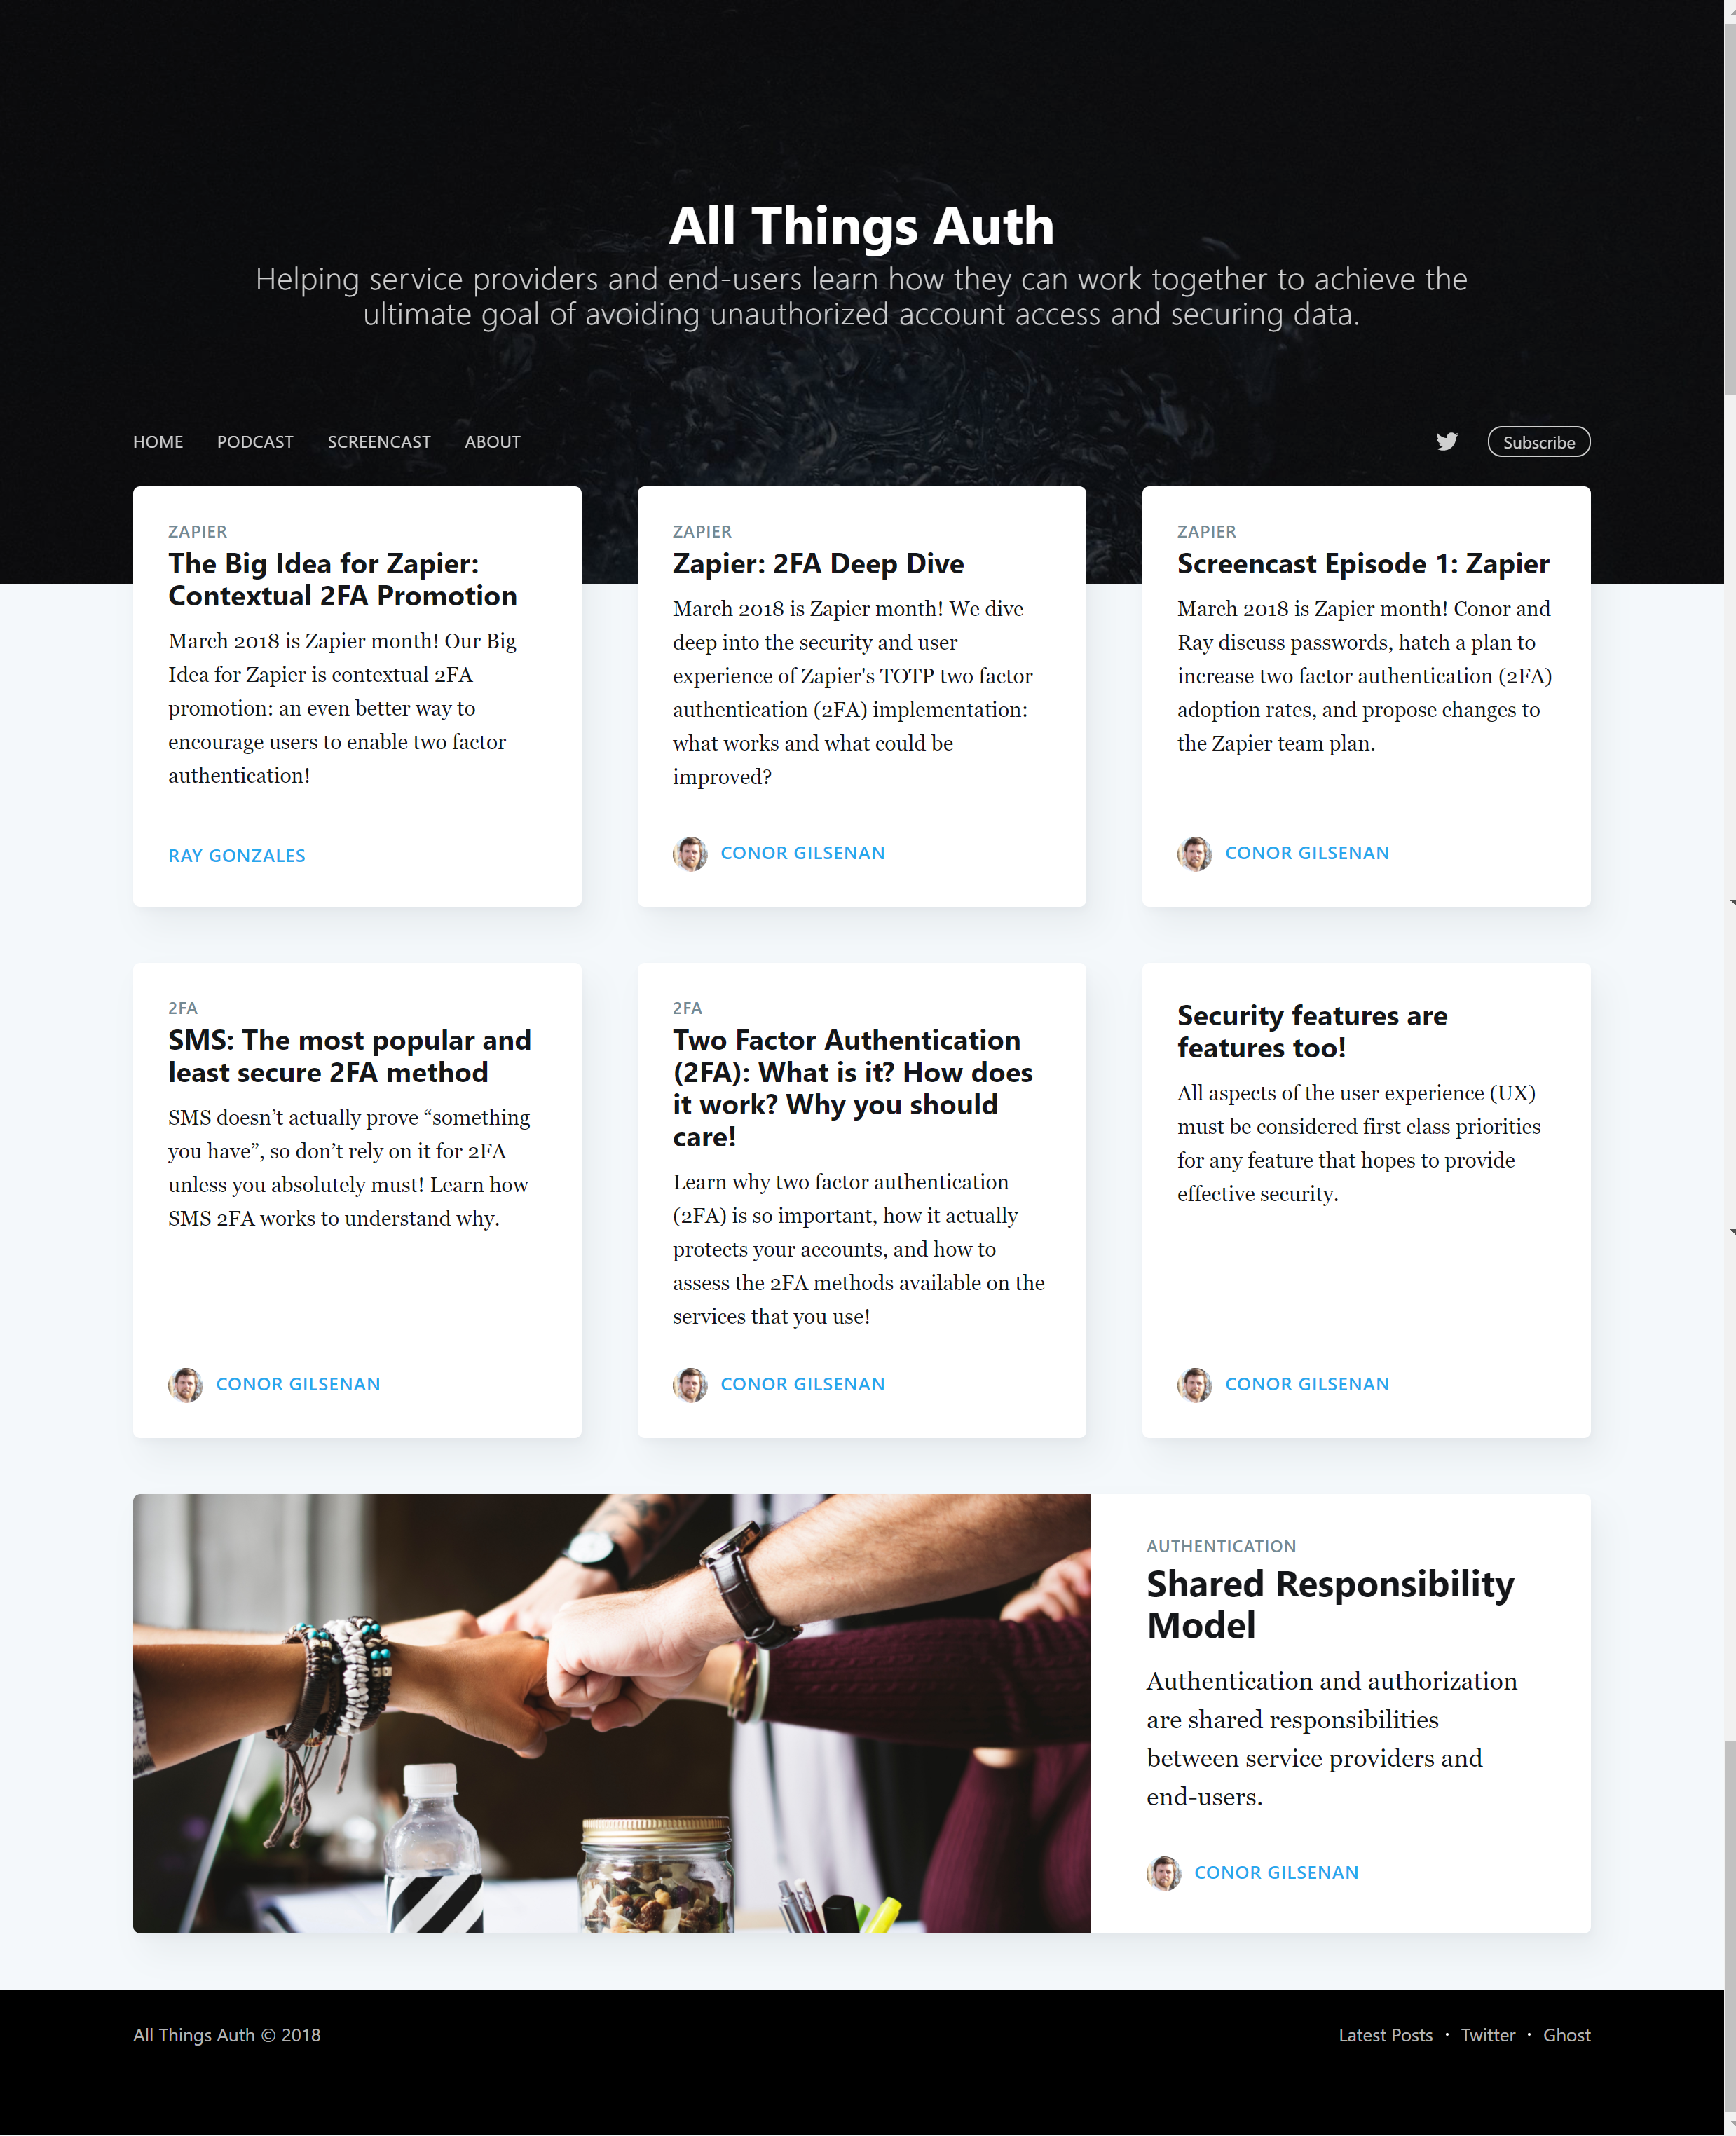 The All Things Auth website, currently using the default template.